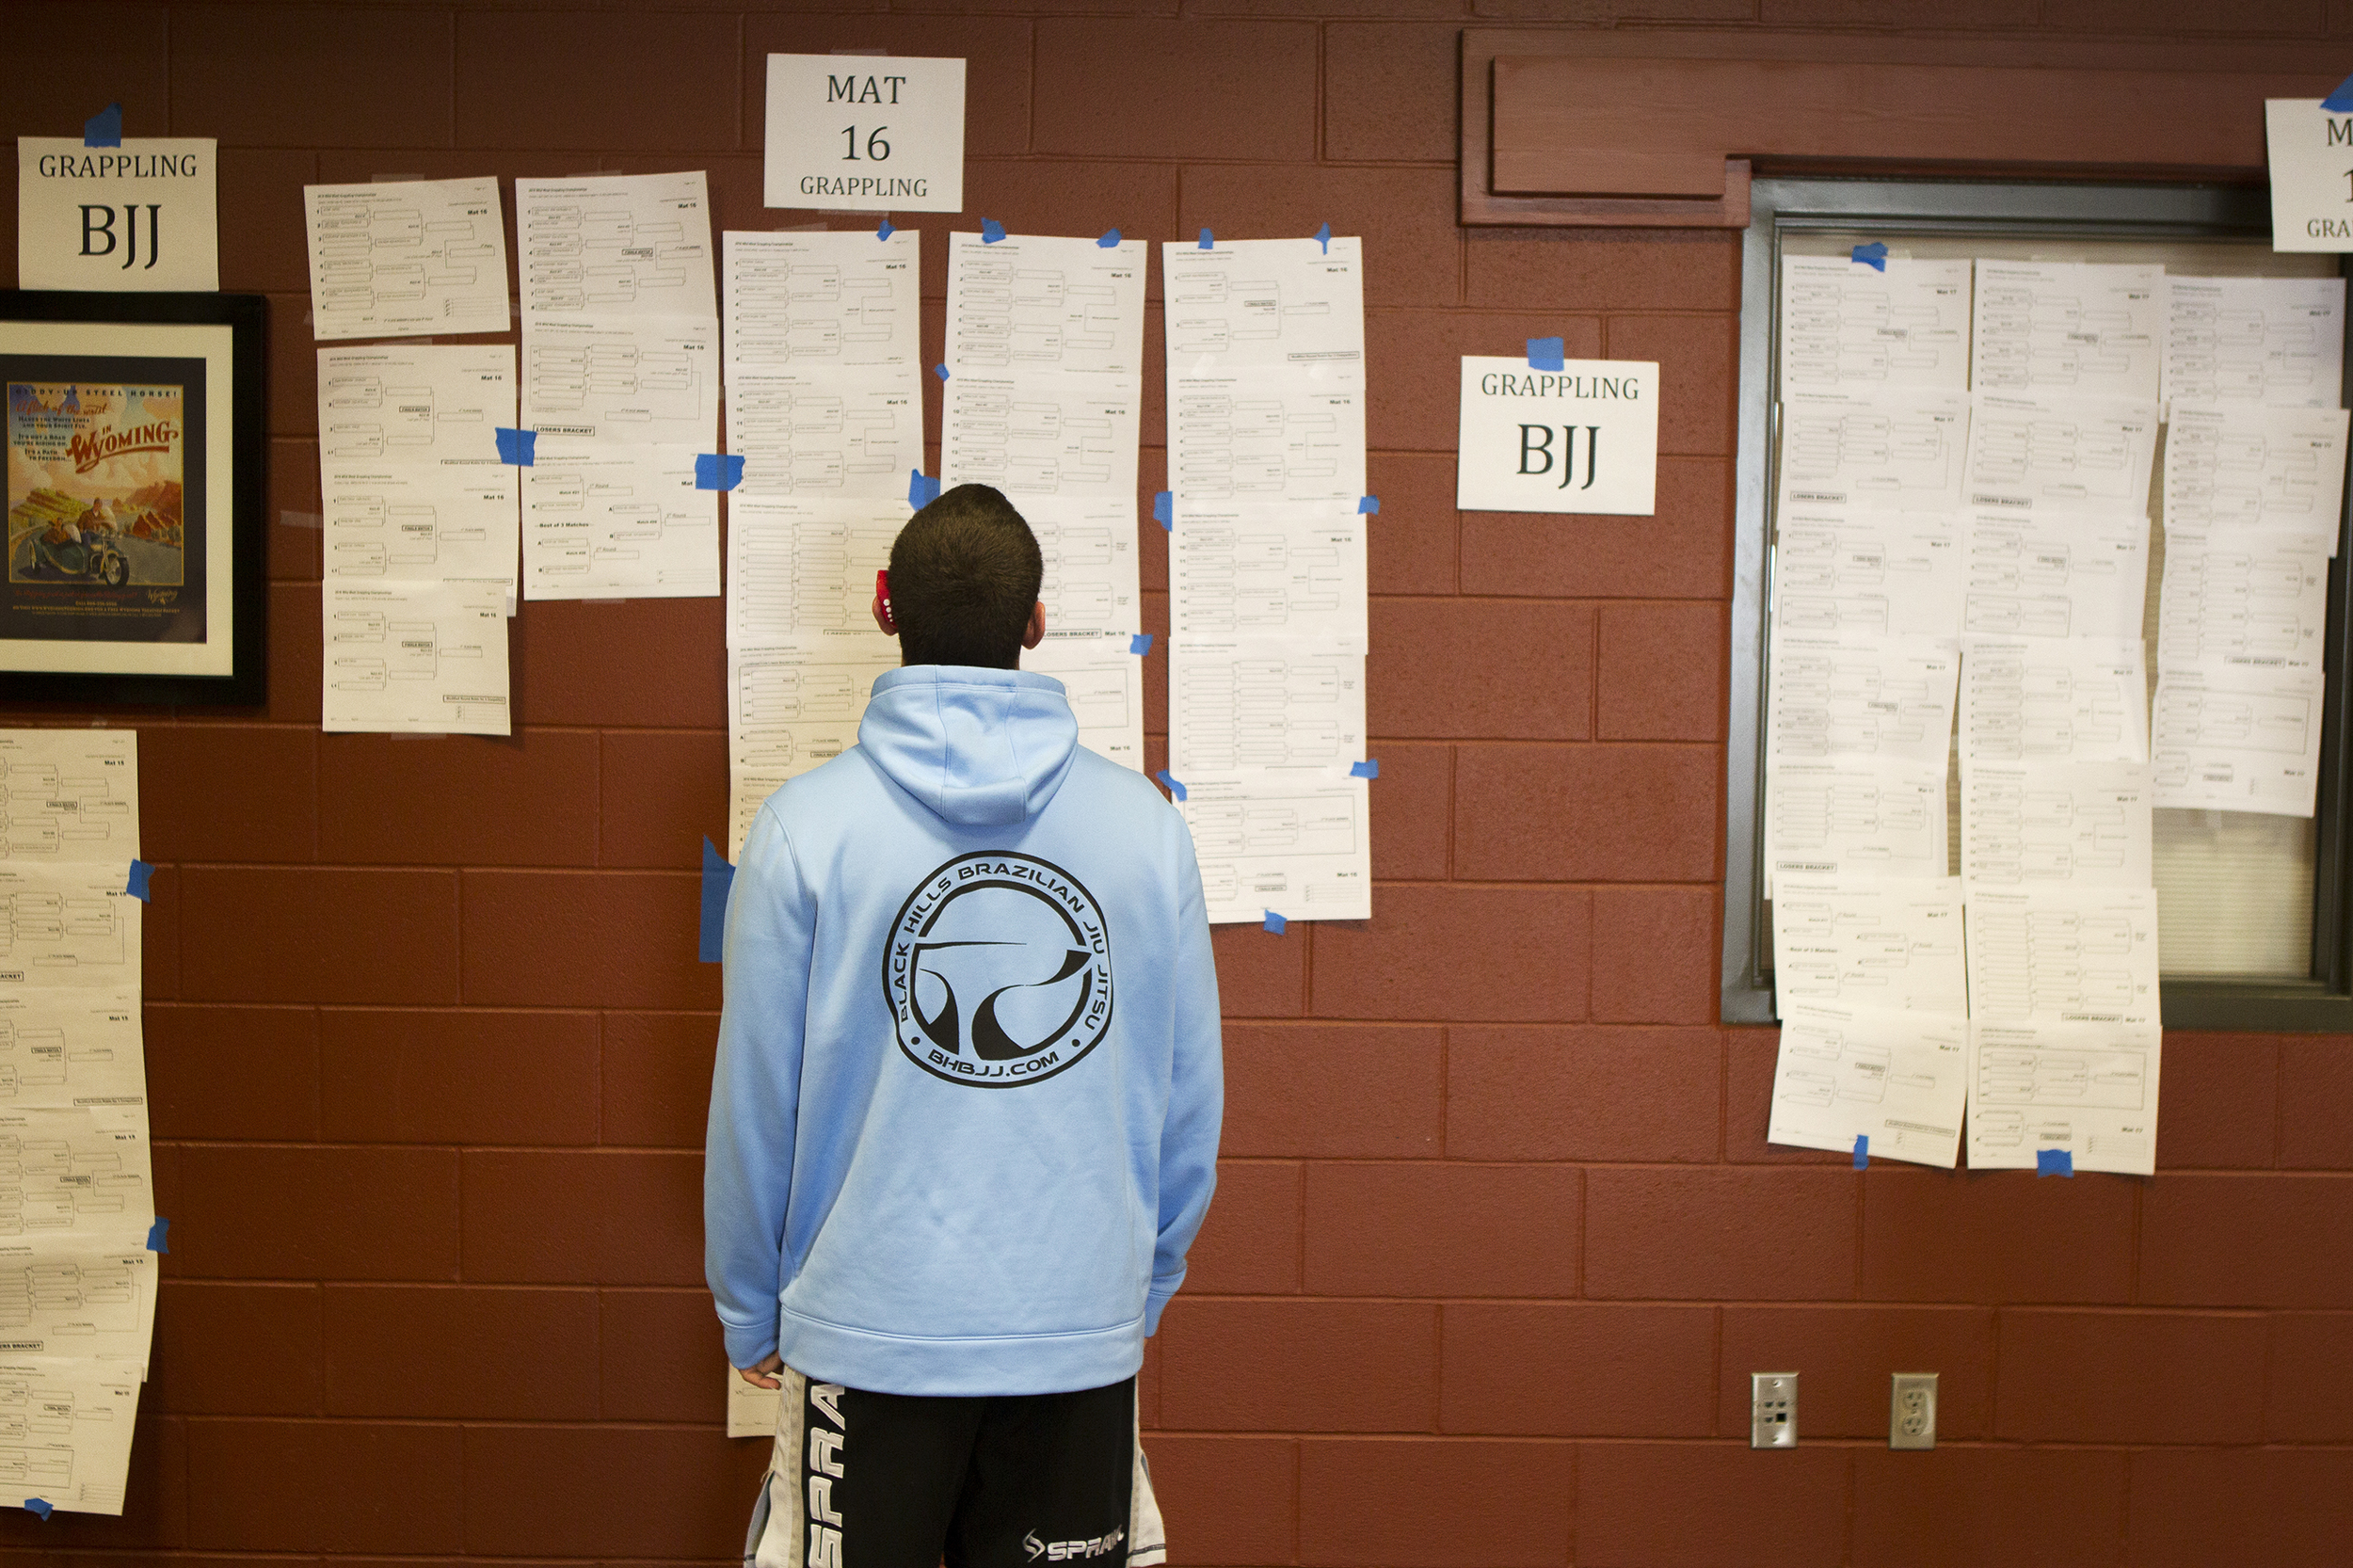 Justin Nelson from Rapid City, South Dakota, looks at the brackets Saturday for the grappling portion of the Wild West wrestling tournament at the Wyoming Center.